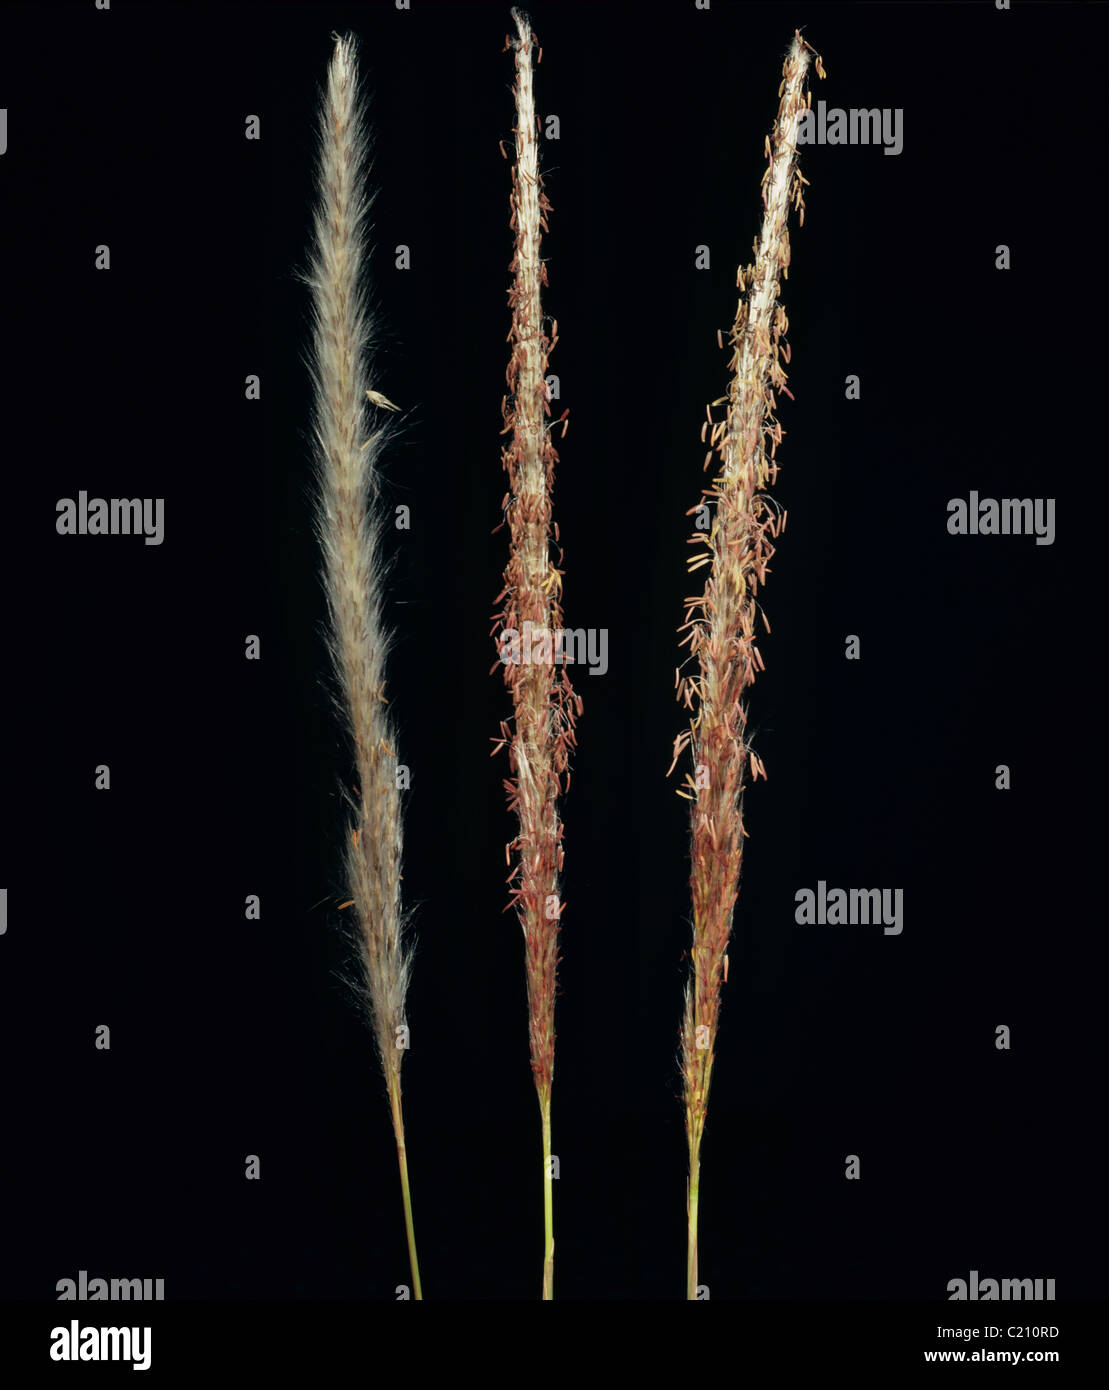 Cogongrass or lalang Imperata cylindrica flower spikes - Stock Image